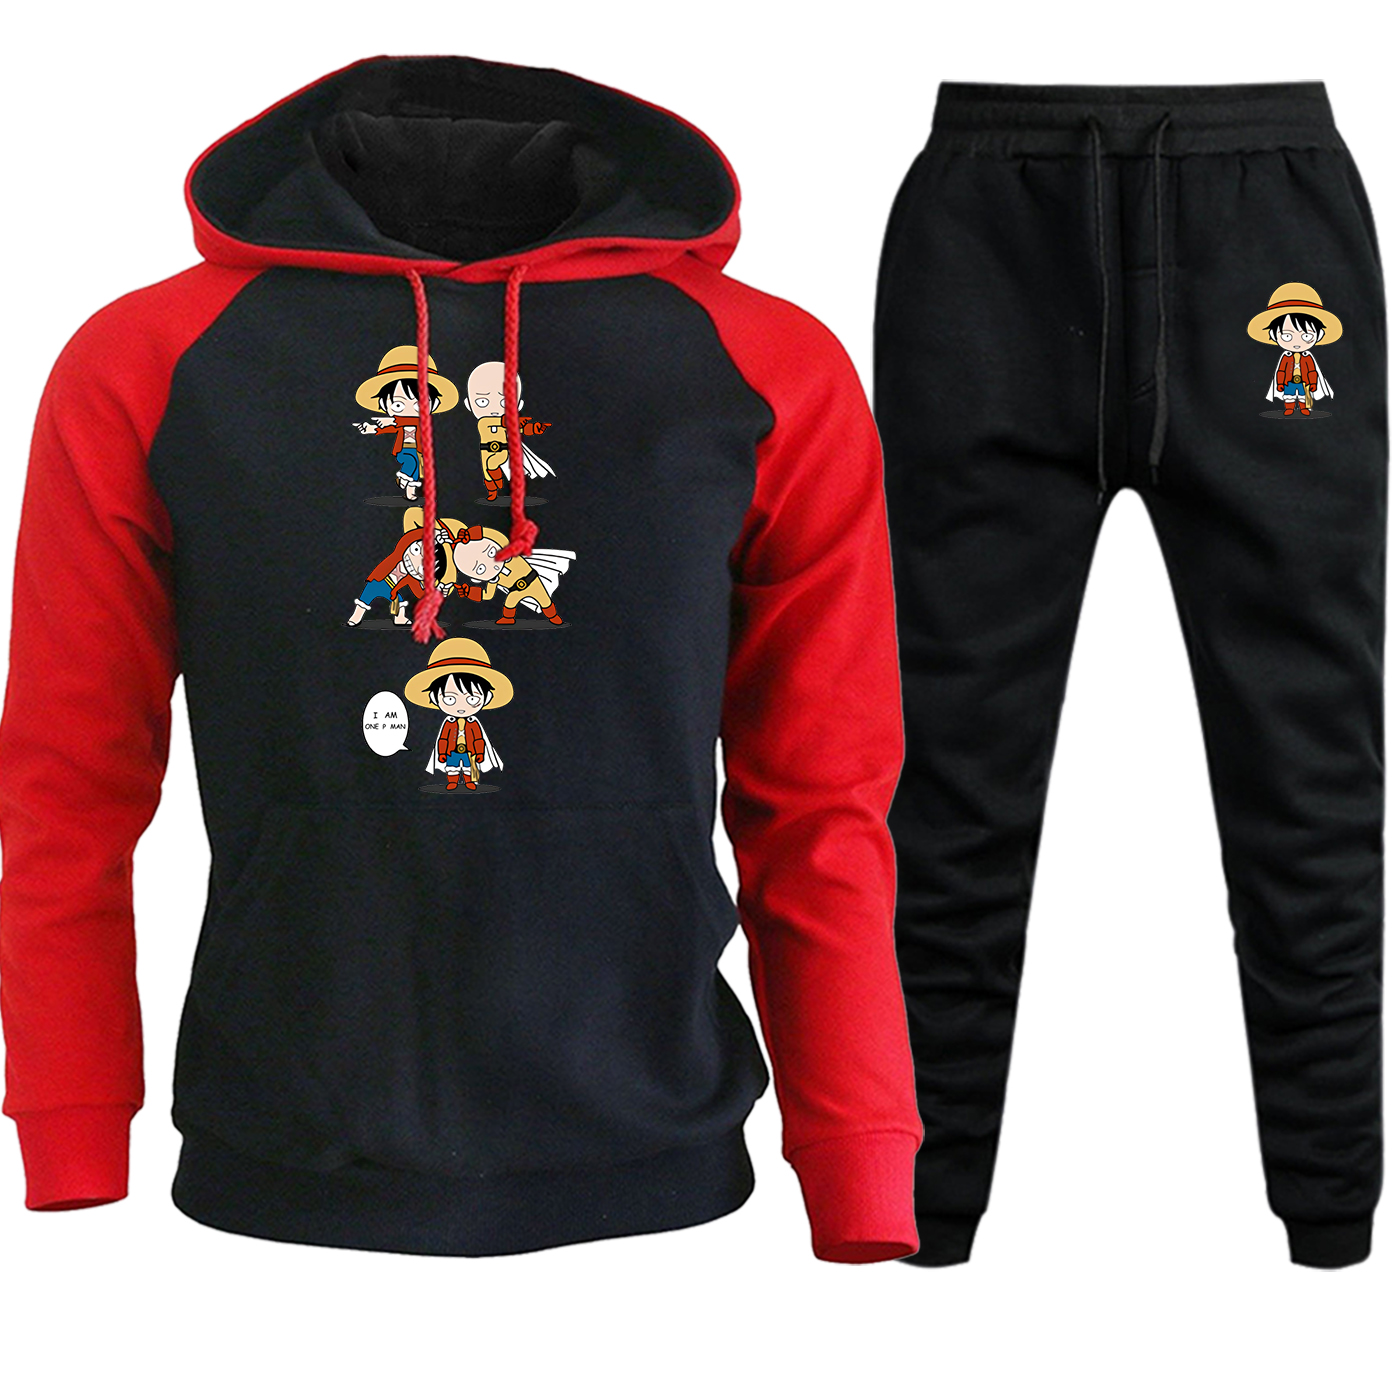 Strongest Pirate Autumn Winter 2019 Streetwear Fashion Hooded Mens Raglan Suit Japan Anime Pullover Hoodie+Pants 2 Piece Set